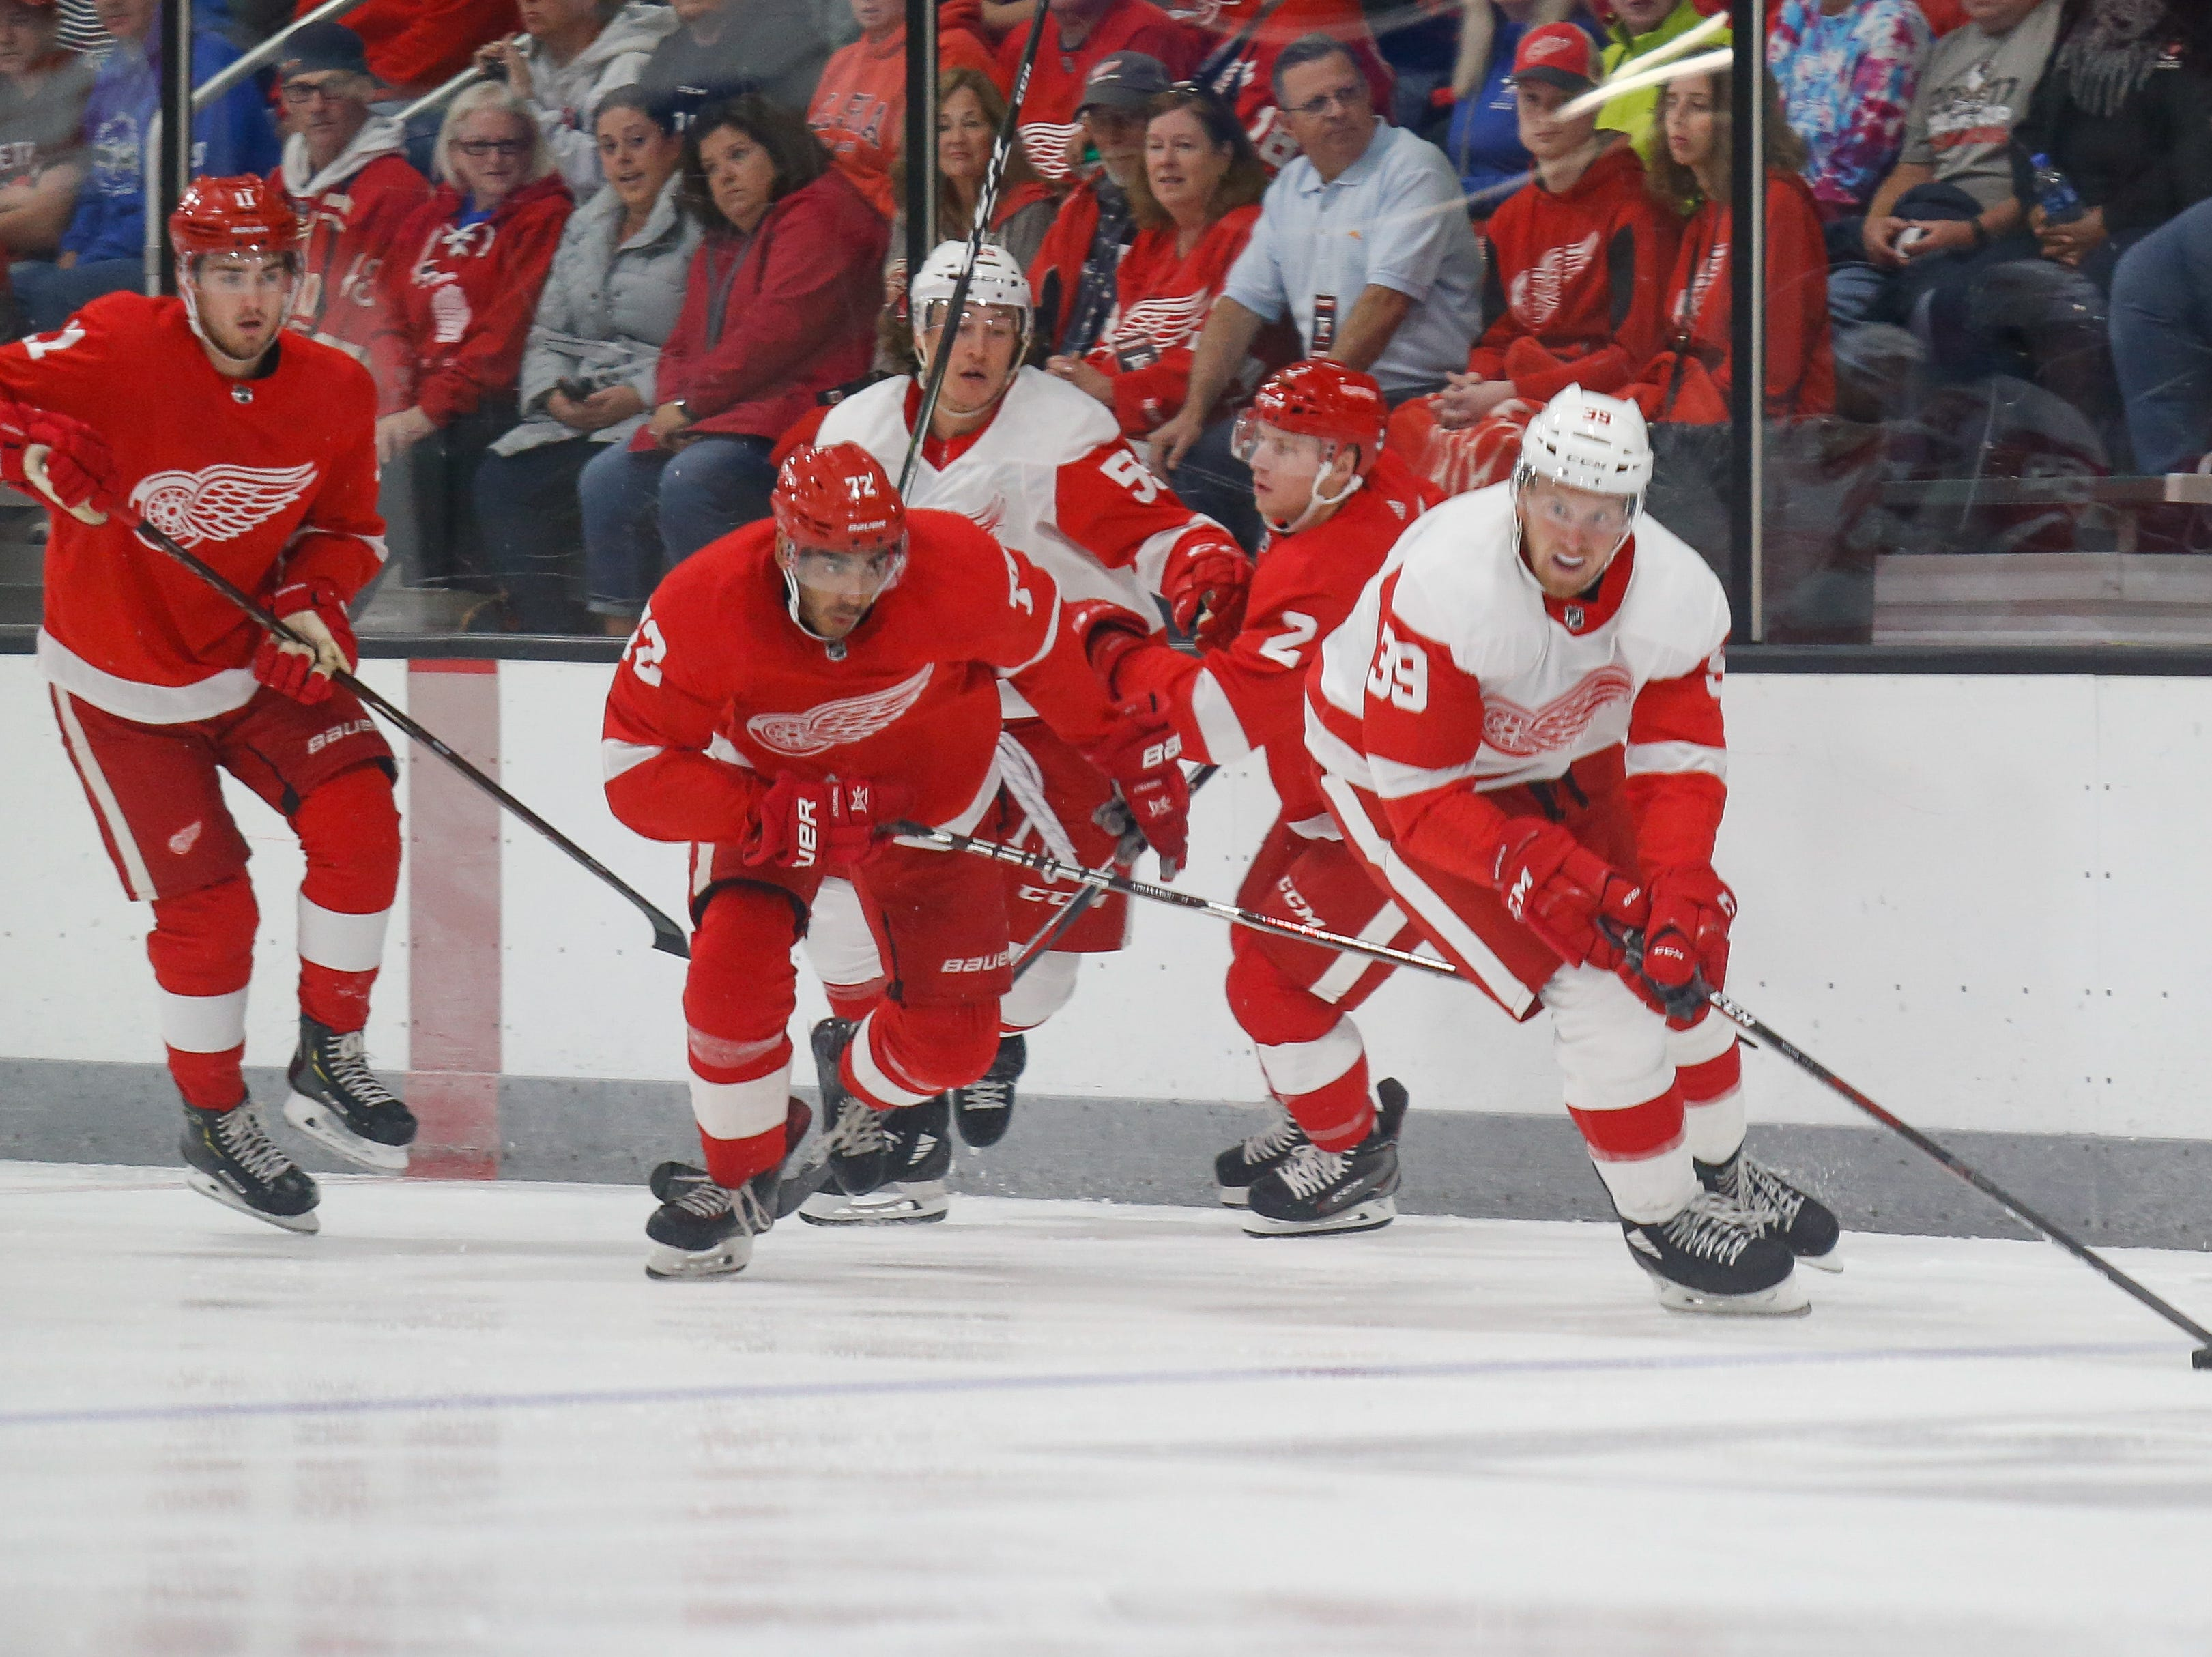 Anthony Mantha (39) carries the puck out of a scrum with Andreas Athanasiou (72) giving chase.